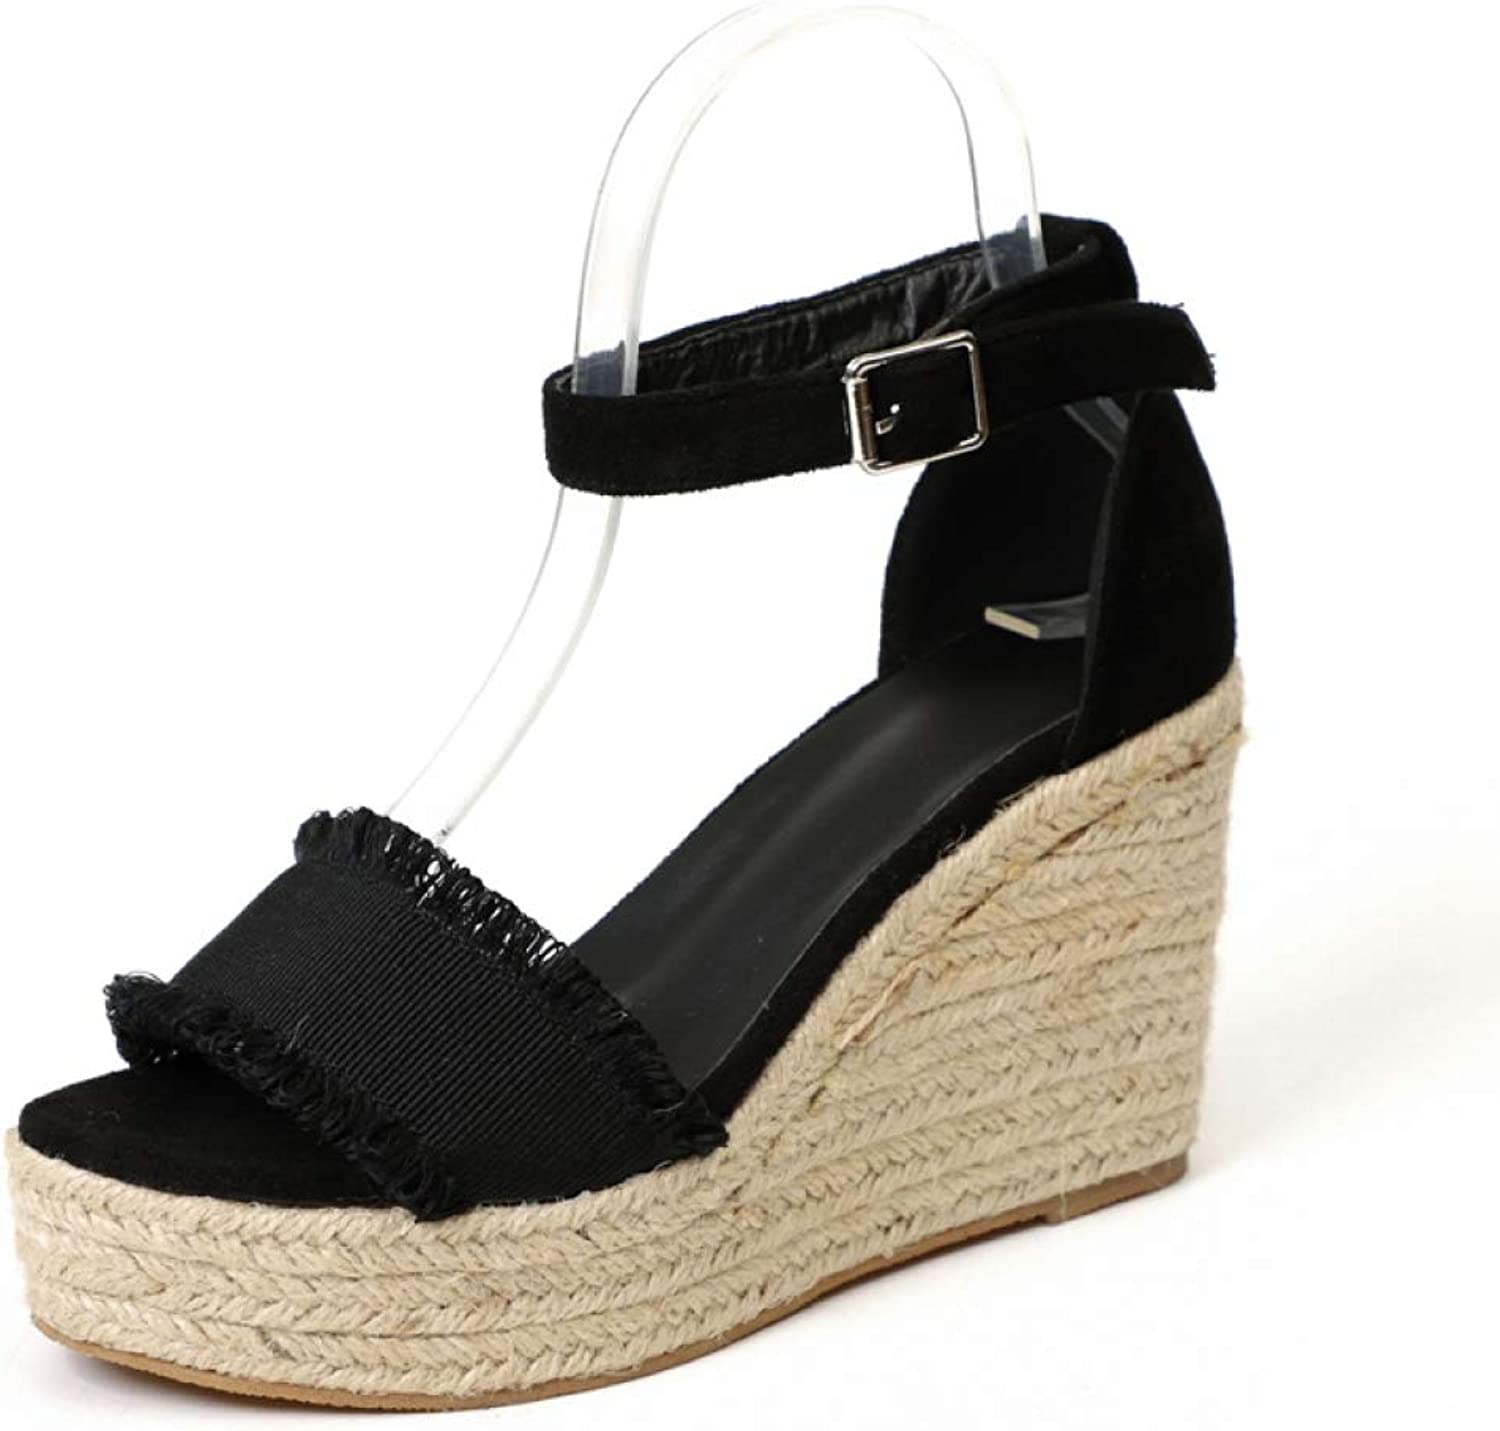 Summer Style Women Wedge Sandals Fashion Concise Open Toe Platform High Heels Sandal Ladies Casual shoes